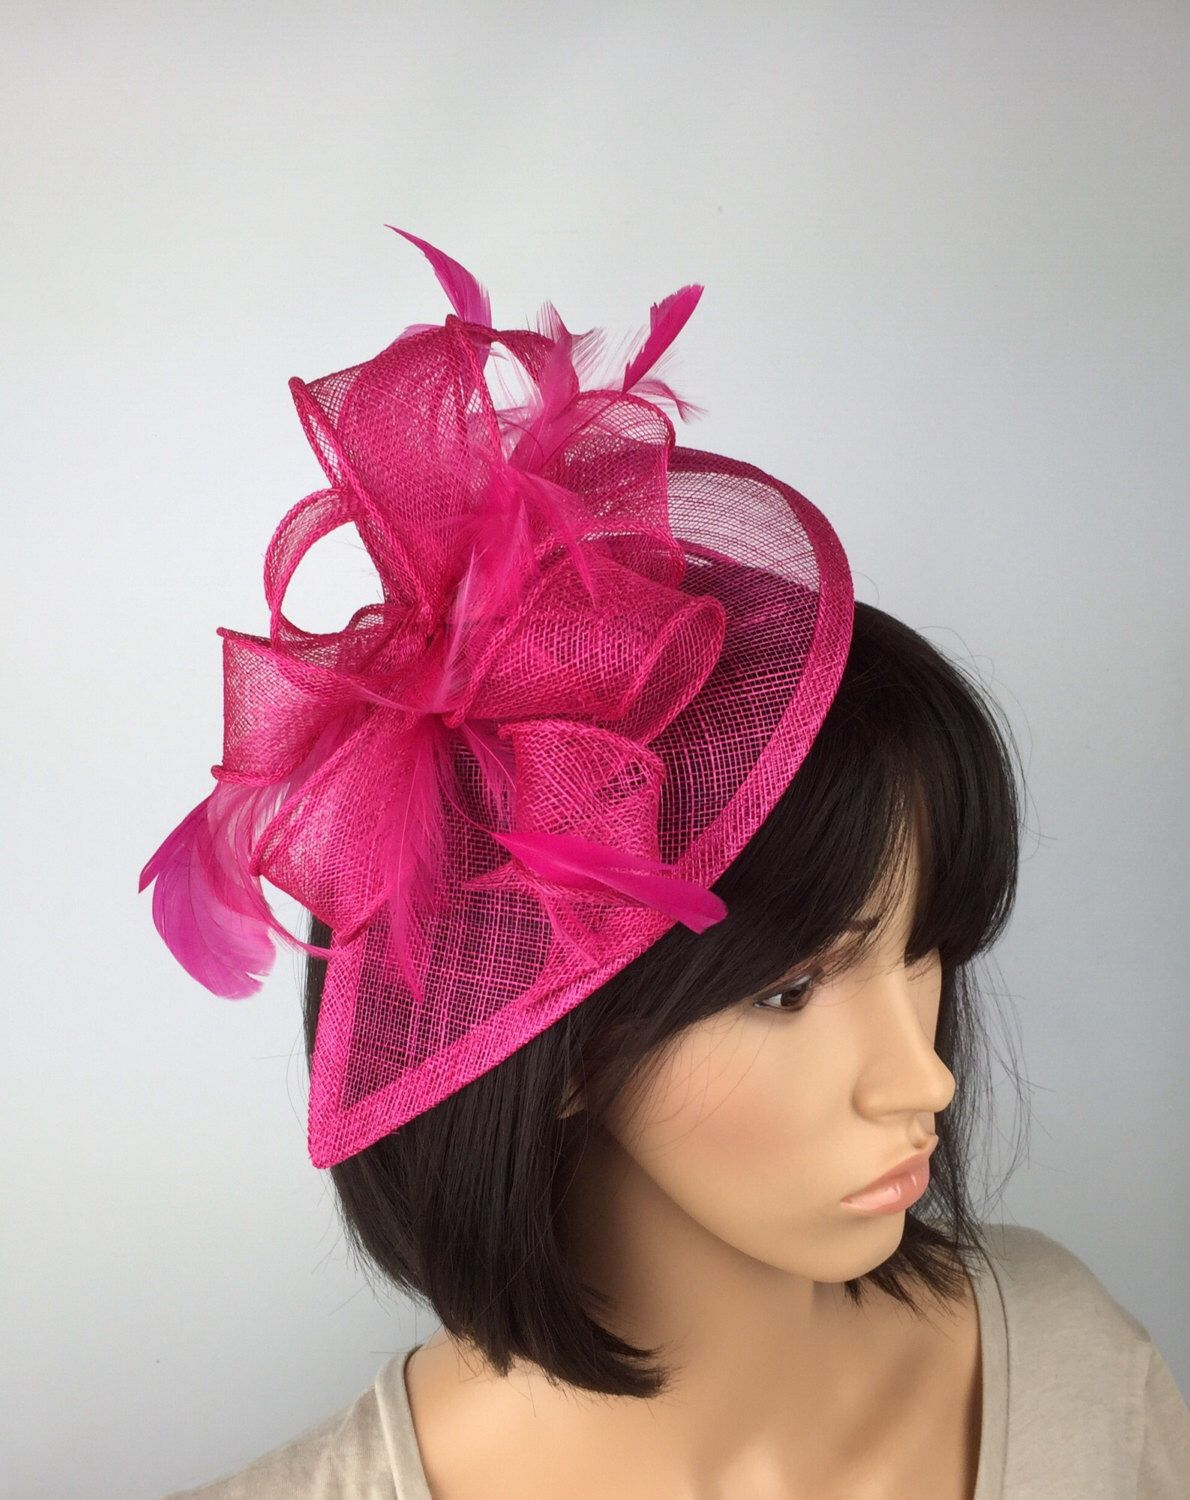 cb4a192378d7d Excited to share this item from my  etsy shop  Fuchsia Pink Hot Pink  Fascinator Sinamay Fascinator wedding mother of the bride Ladies Day Ascot  races